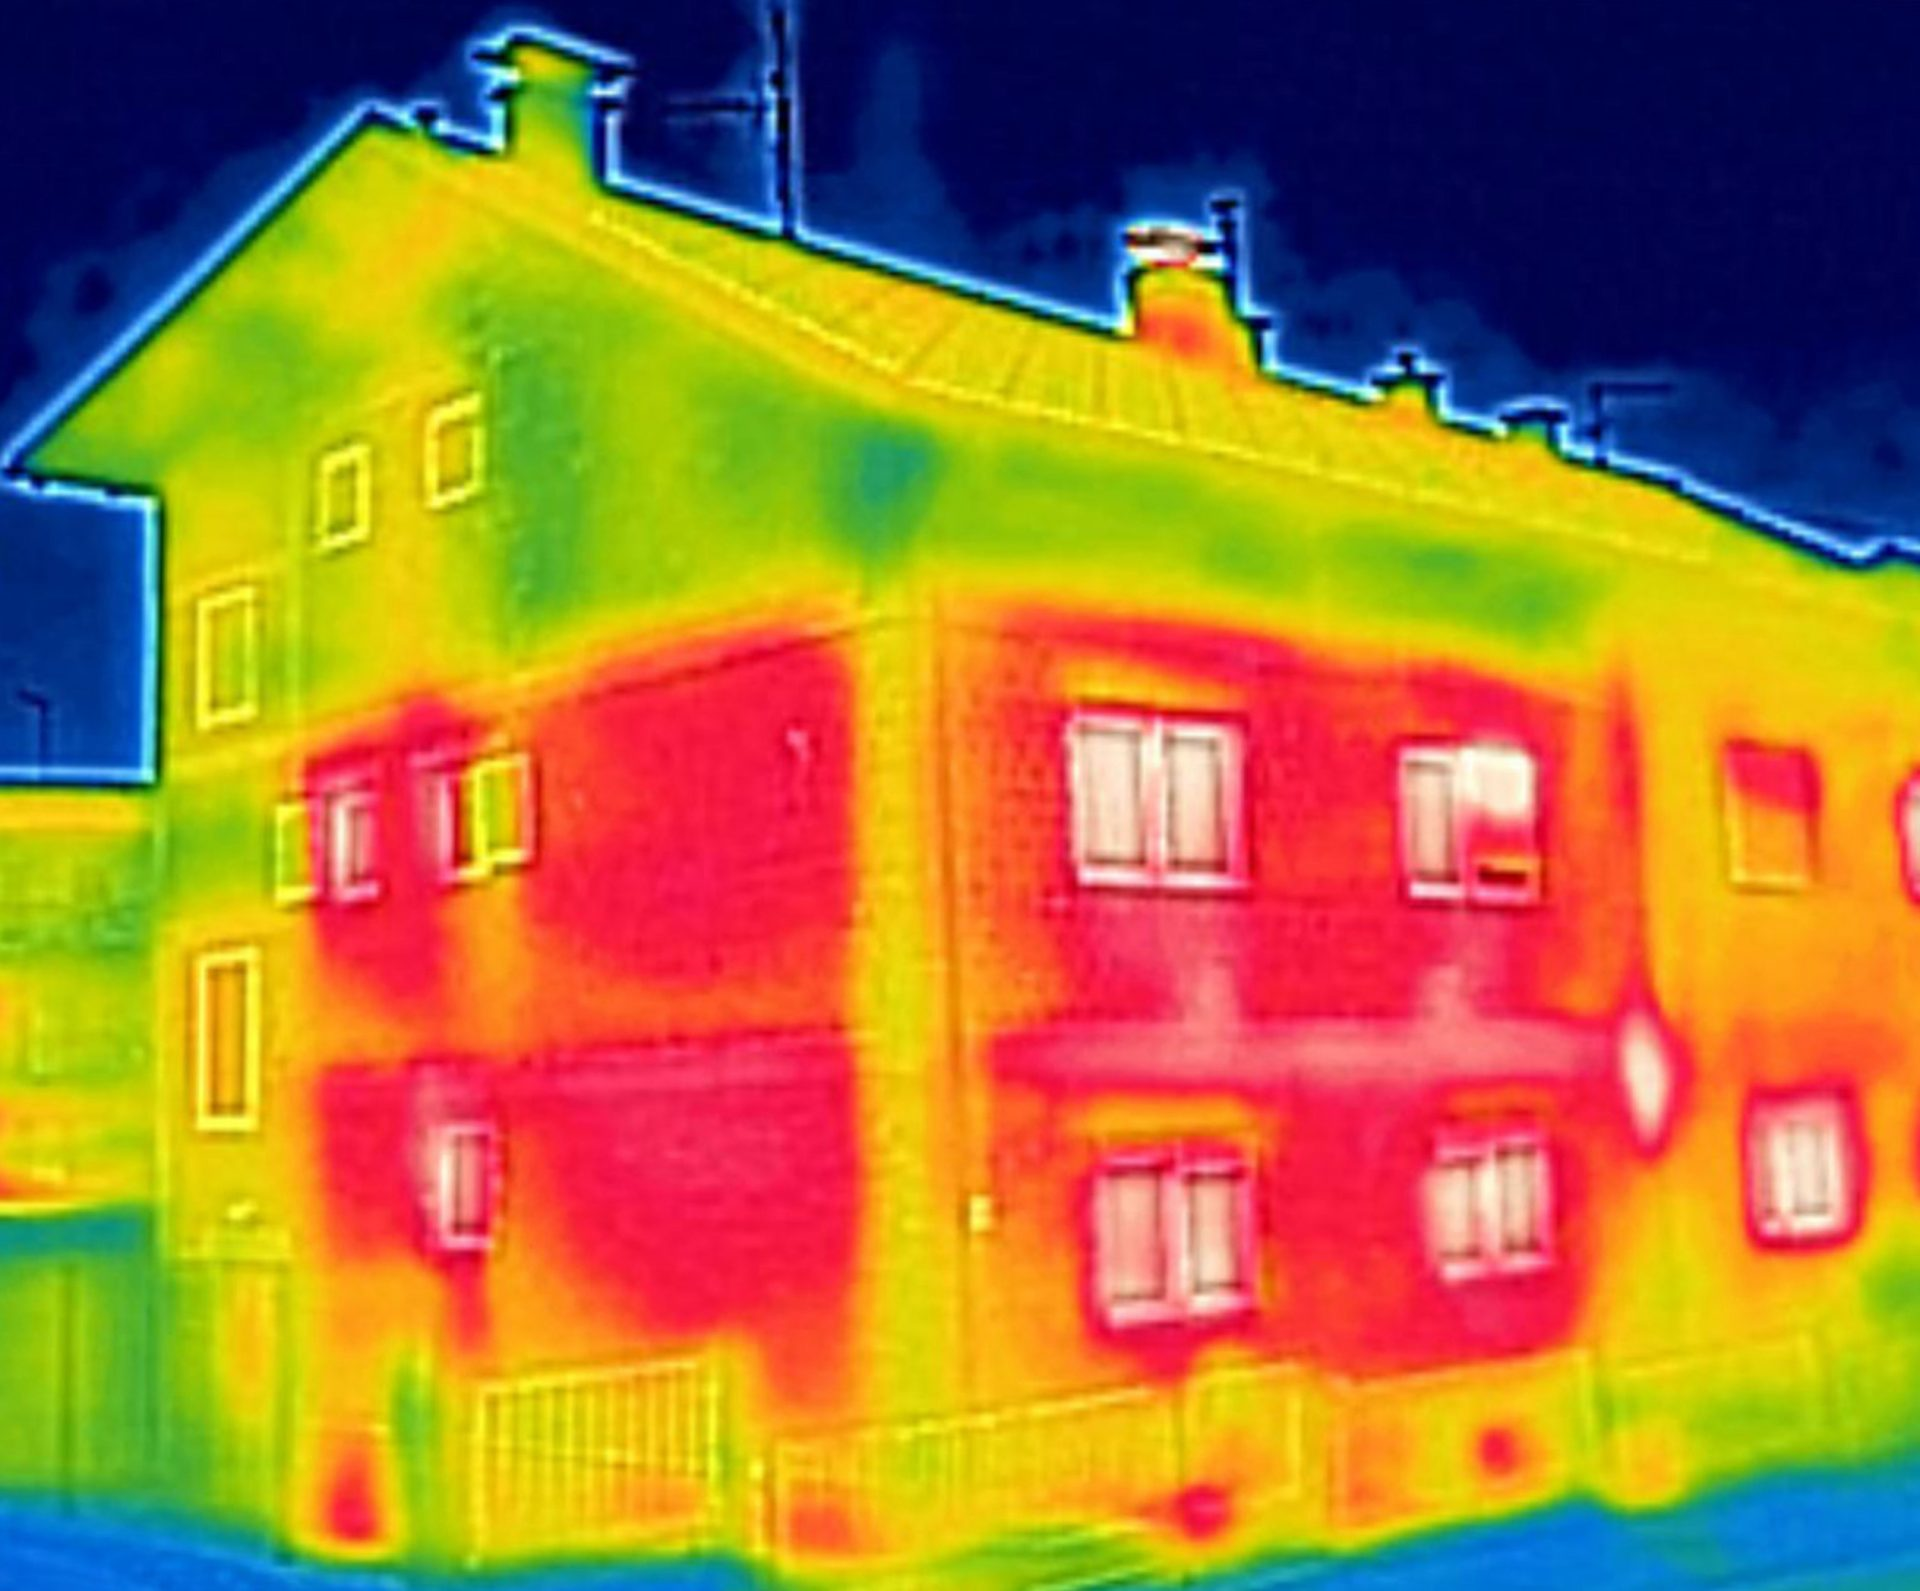 Thermal Photograph of home depicting heat loss